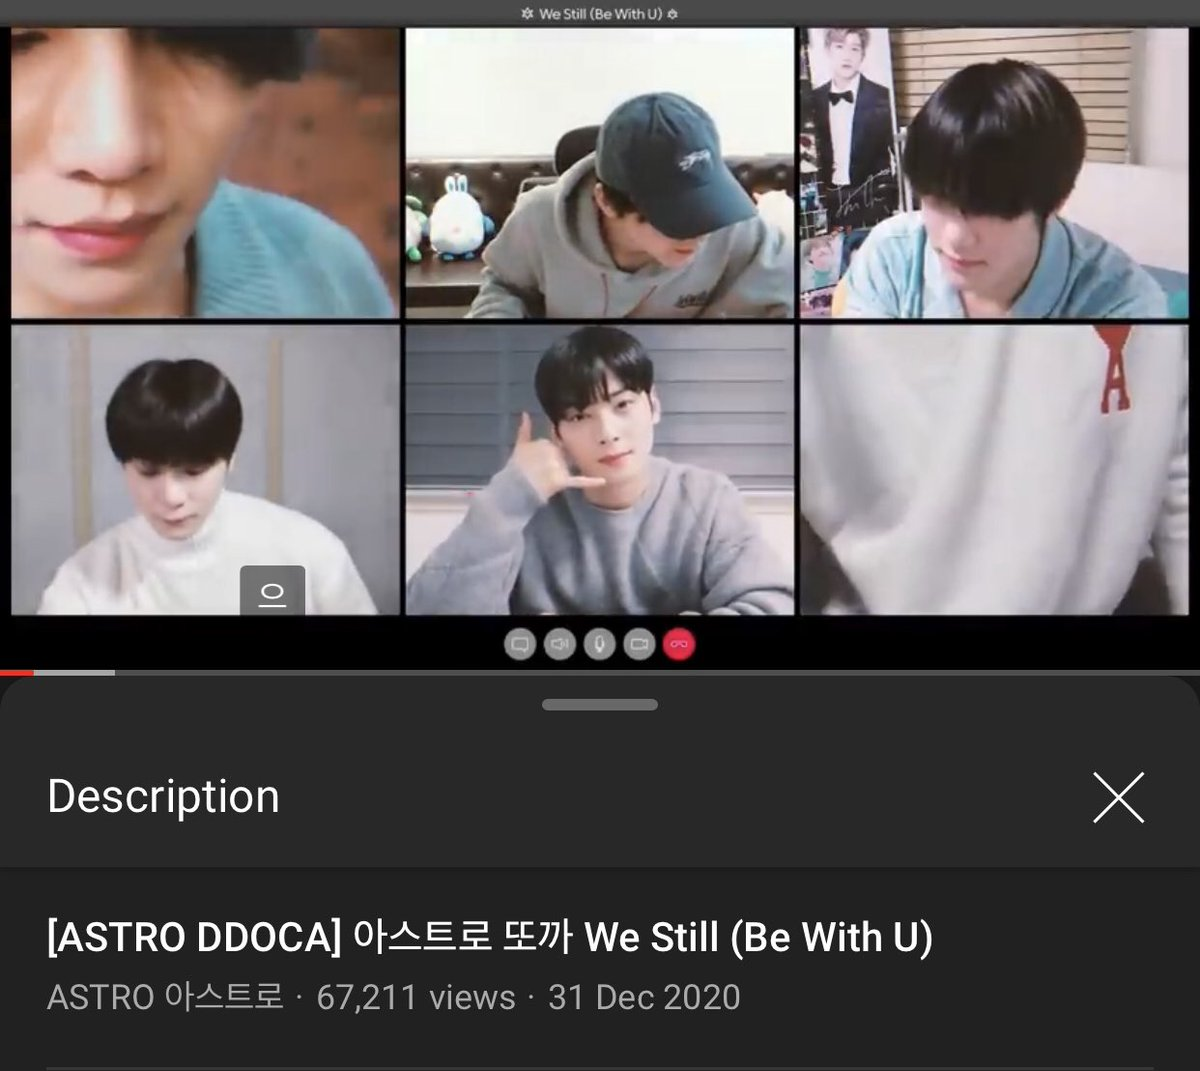 [📈] 210101 12:15 AM KST 'We Still (Be With U)' DDOCA Official Channel: 67,211 views (🔺4,001) 🔗youtu.be/zyk2KpV6avk Naver TV: 87,524 views (🔺8,552) 🔗naver.me/FVPwMoN9 [ #아스트로 #ASTRO_BeWithU @offclASTRO ]